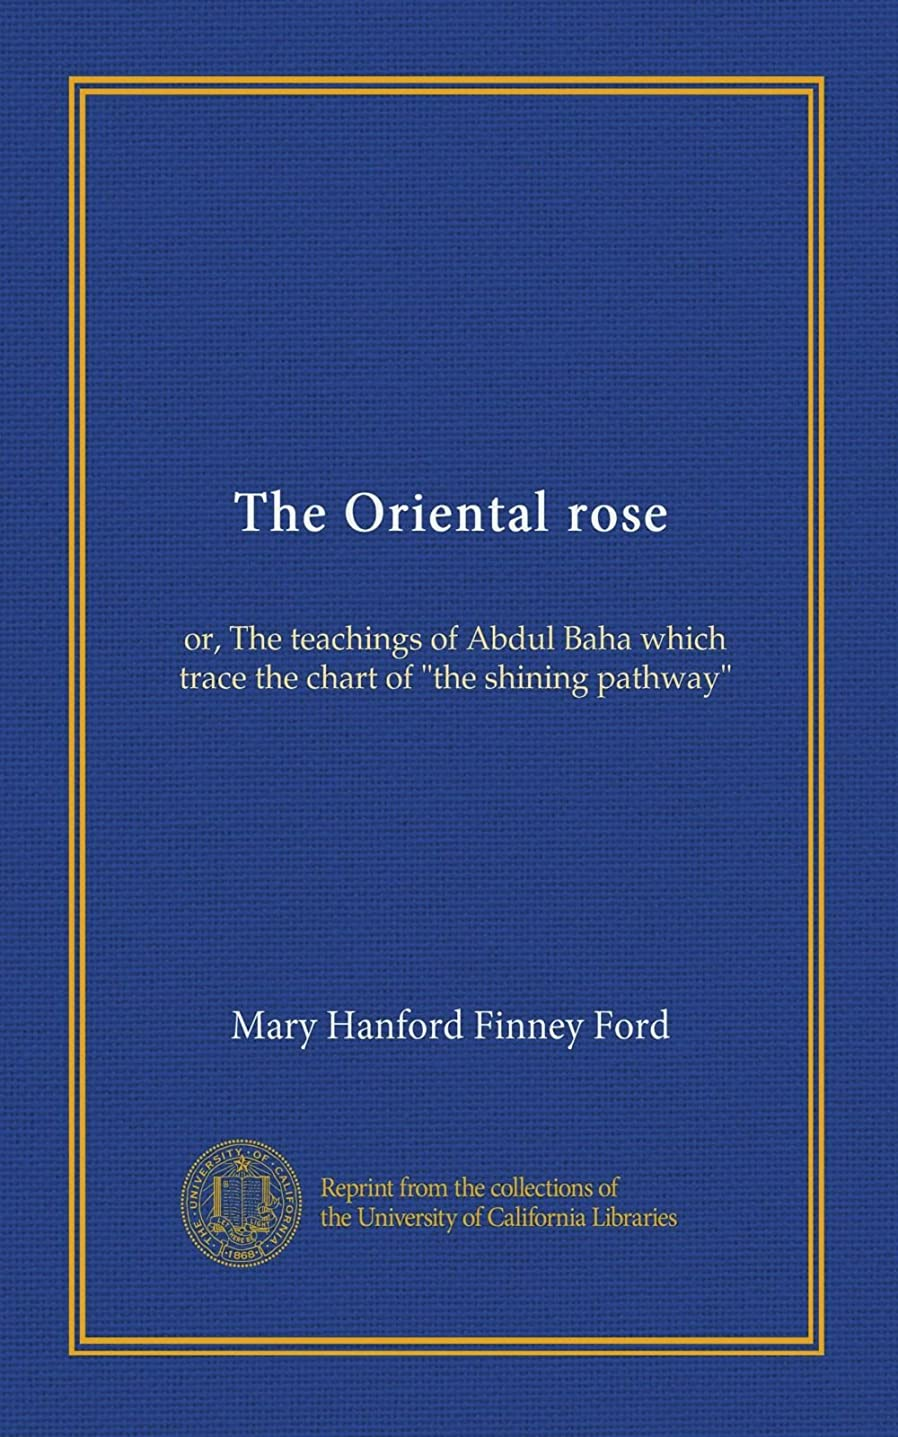 疑わしい絶滅させる保護The Oriental rose: or, The teachings of Abdul Baha which trace the chart of